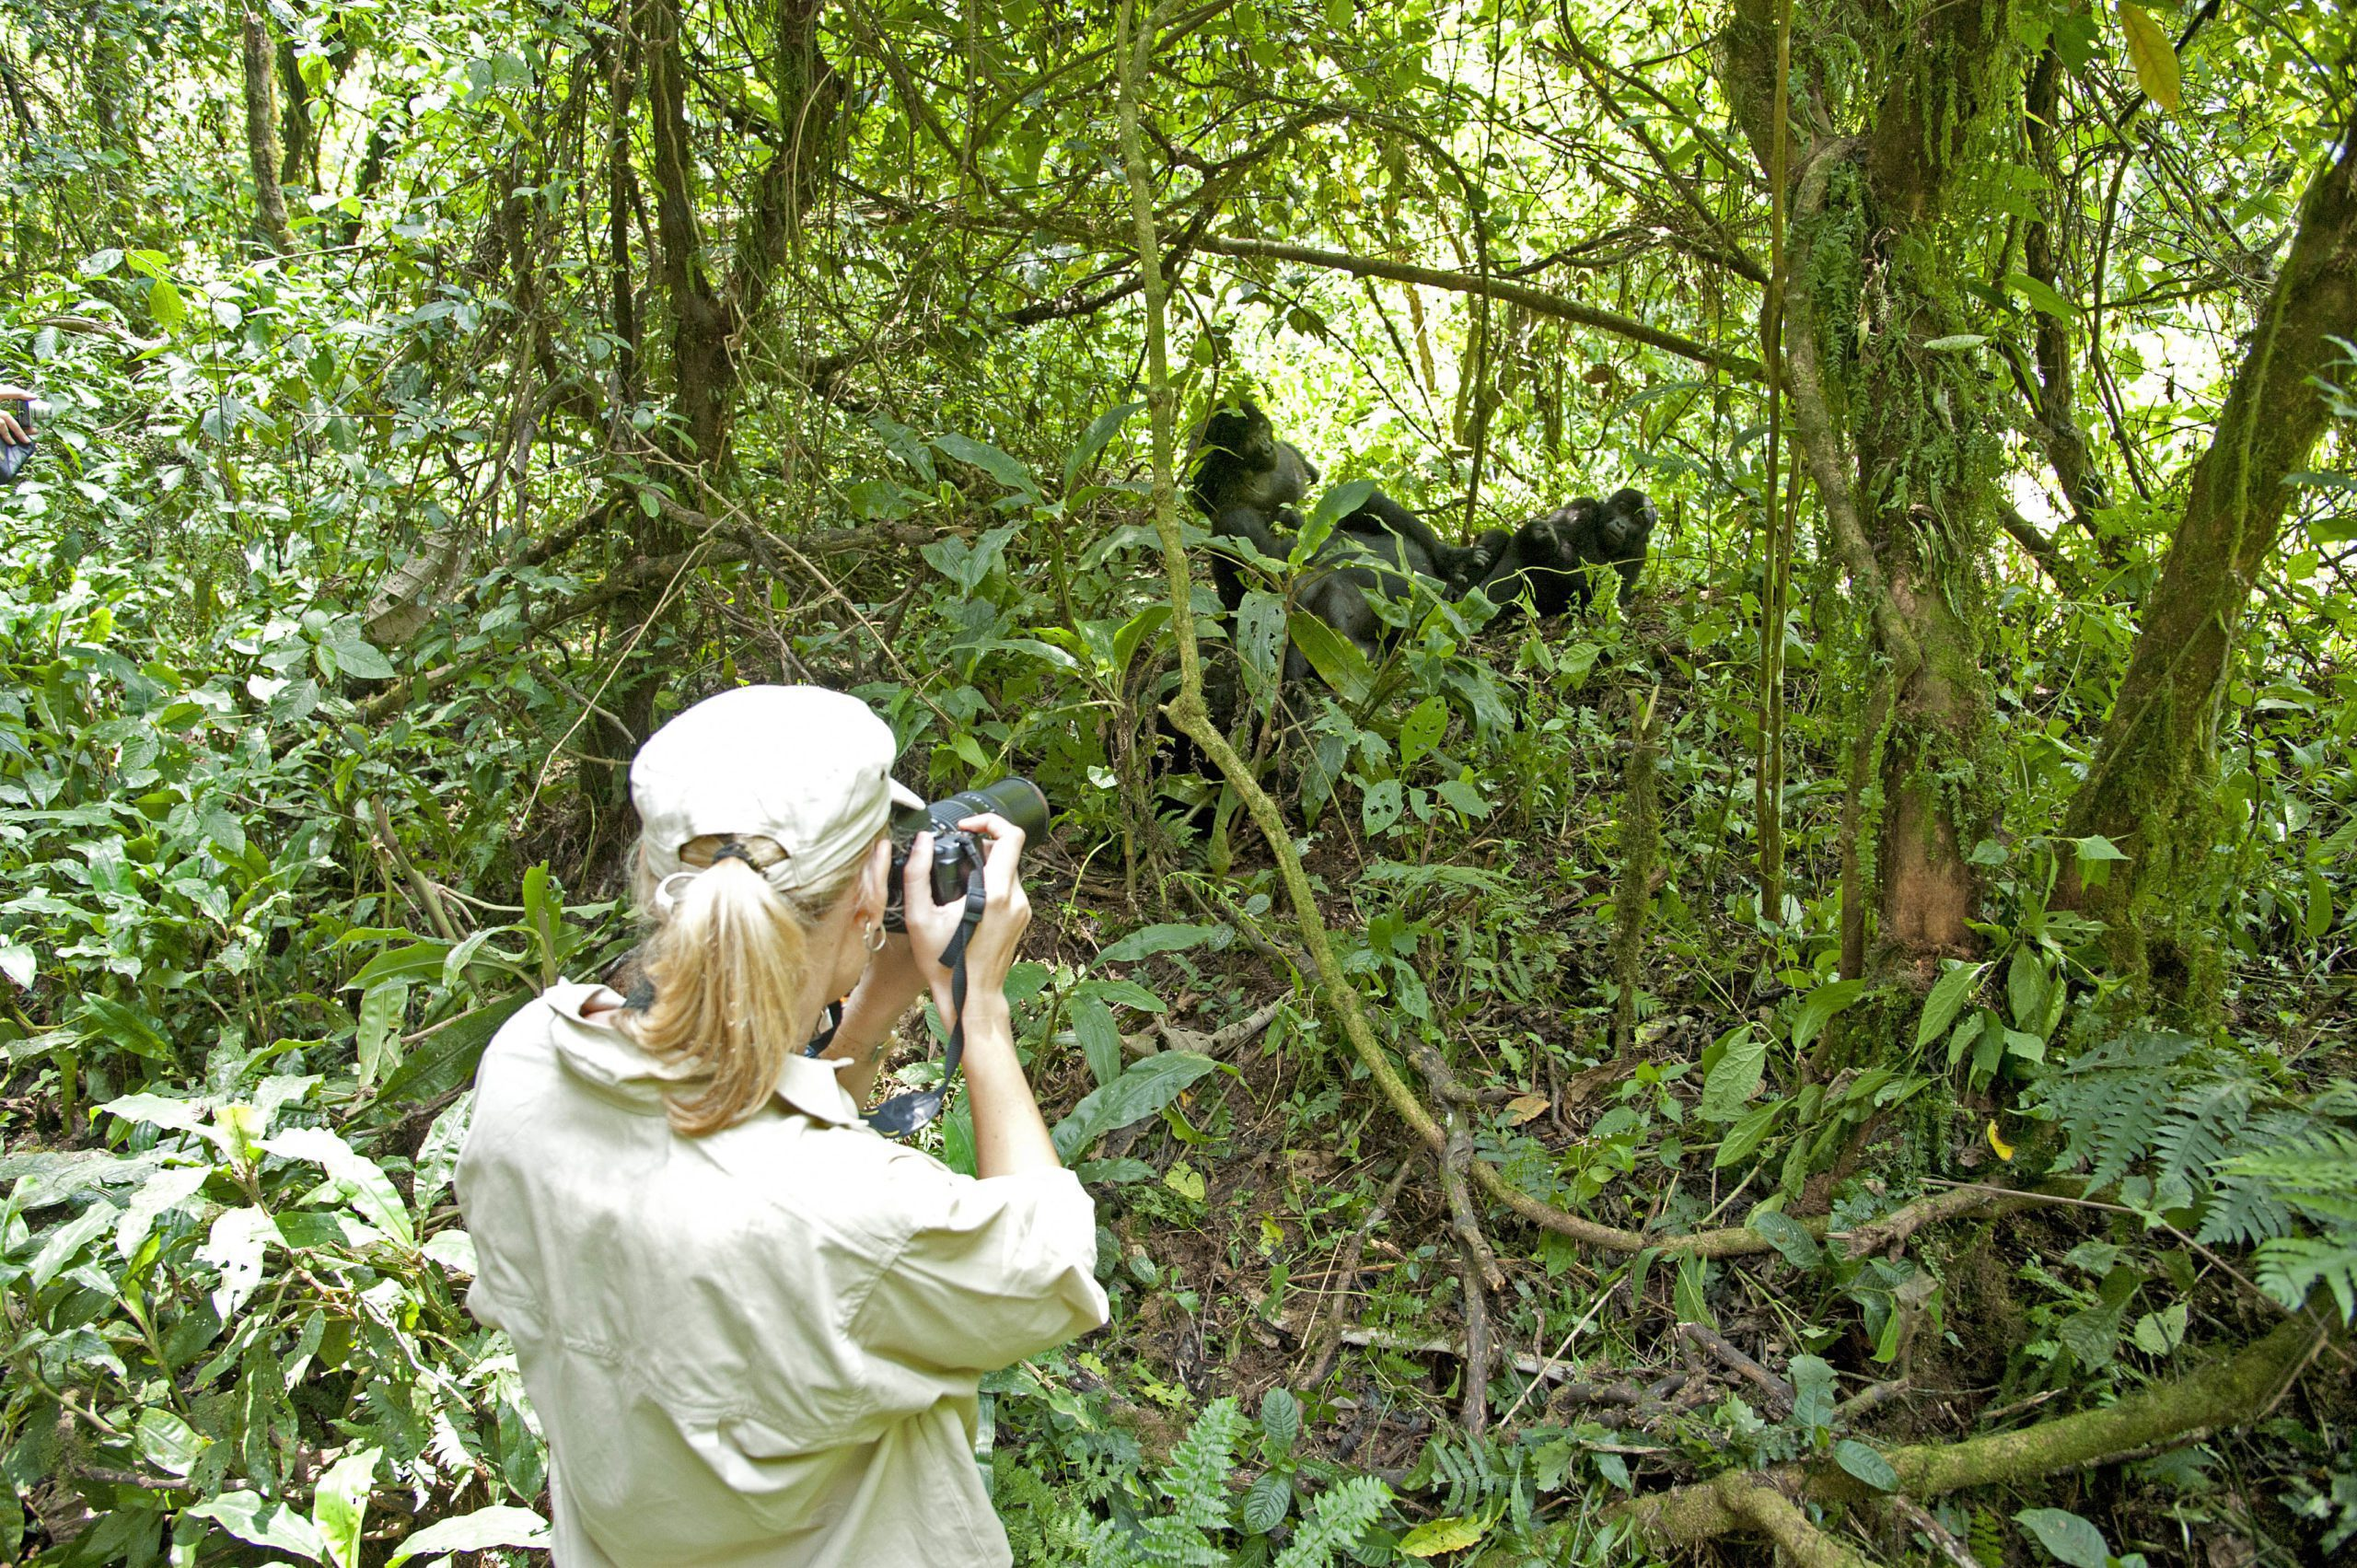 woman in a hat taking a photo of a gorilla in the forest